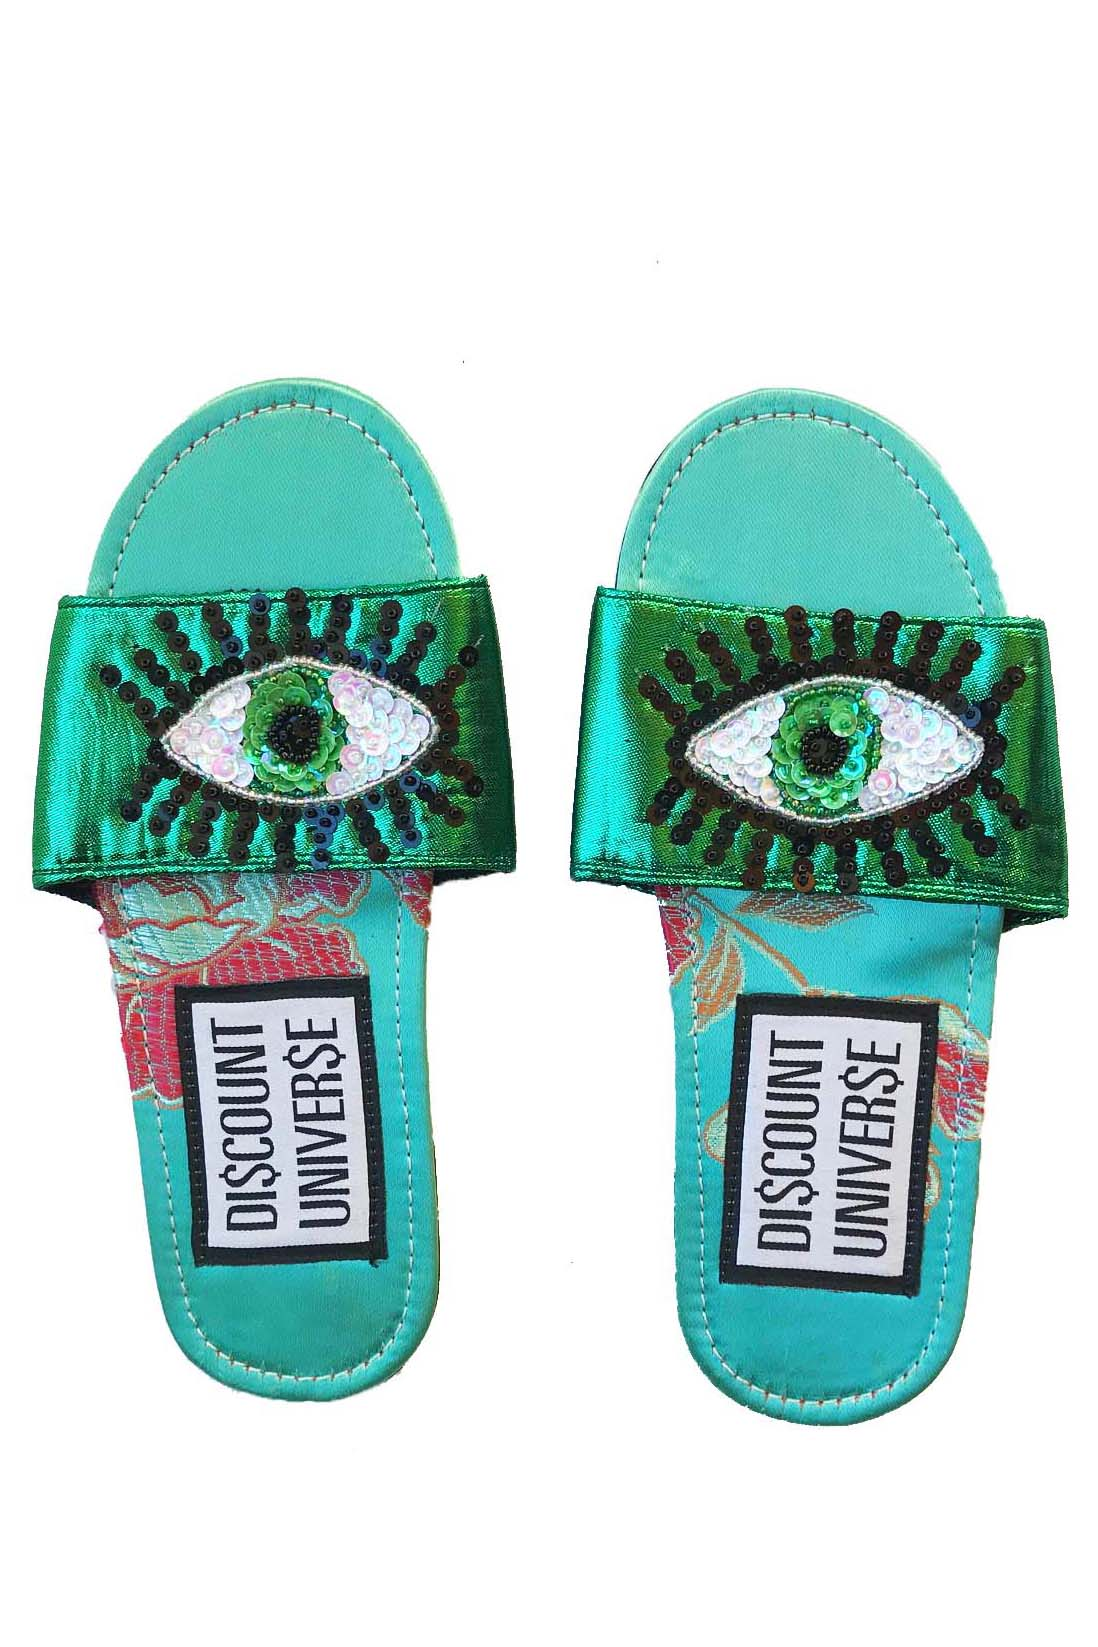 Green and Turquoise Slides